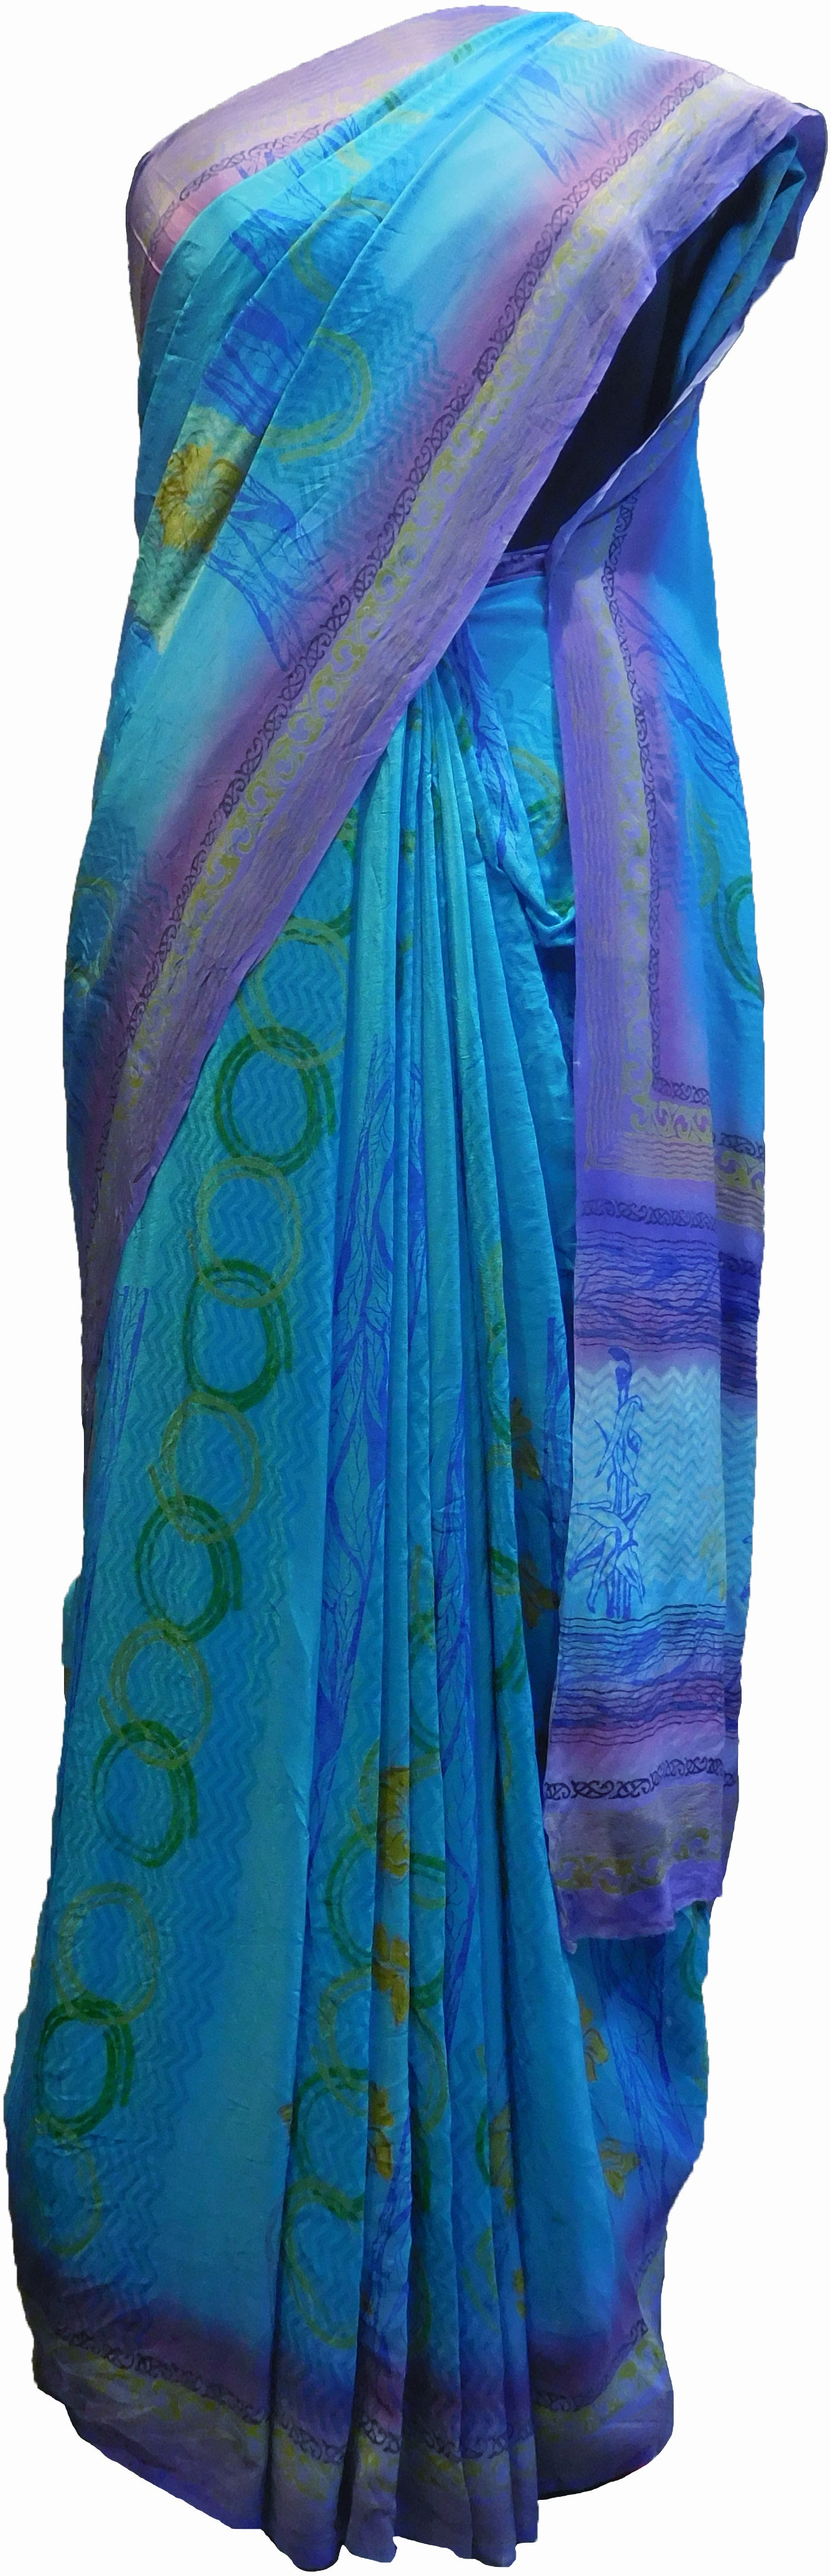 SMSAREE Multi Color Designer Wedding Partywear Pure Crepe Hand Brush Print Hand Embroidery Work Bridal Saree Sari With Blouse Piece RP348